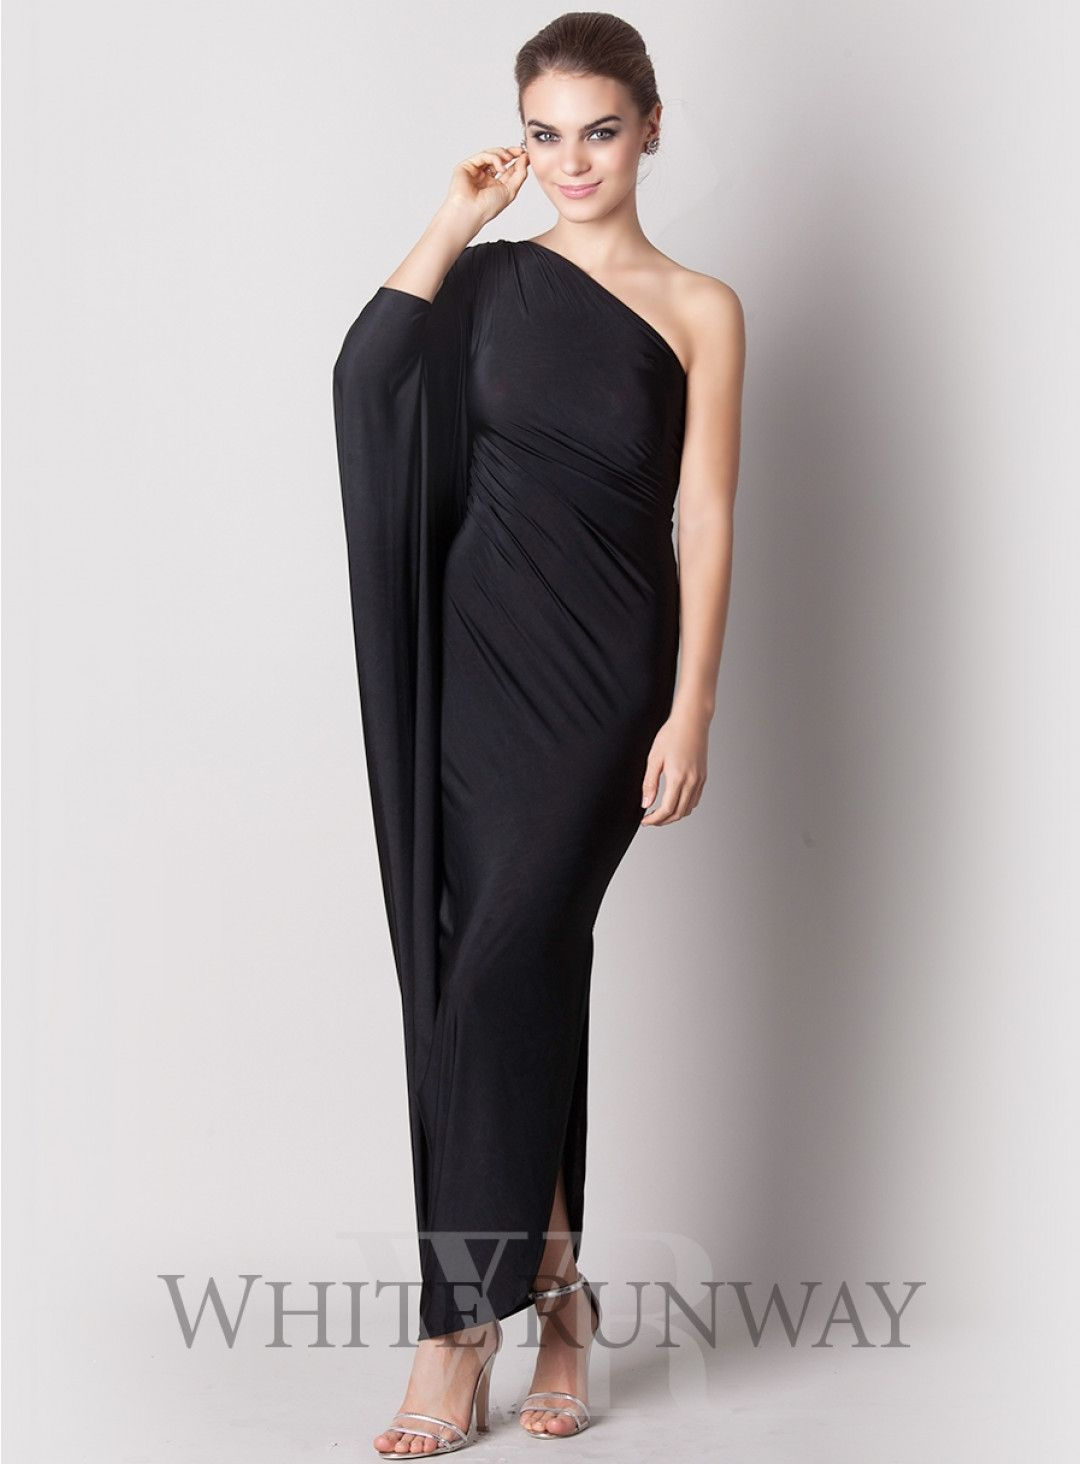 Serena Dress. This one shouldered slinky number features a slit sleeve and is a sexy take on the little black dress.